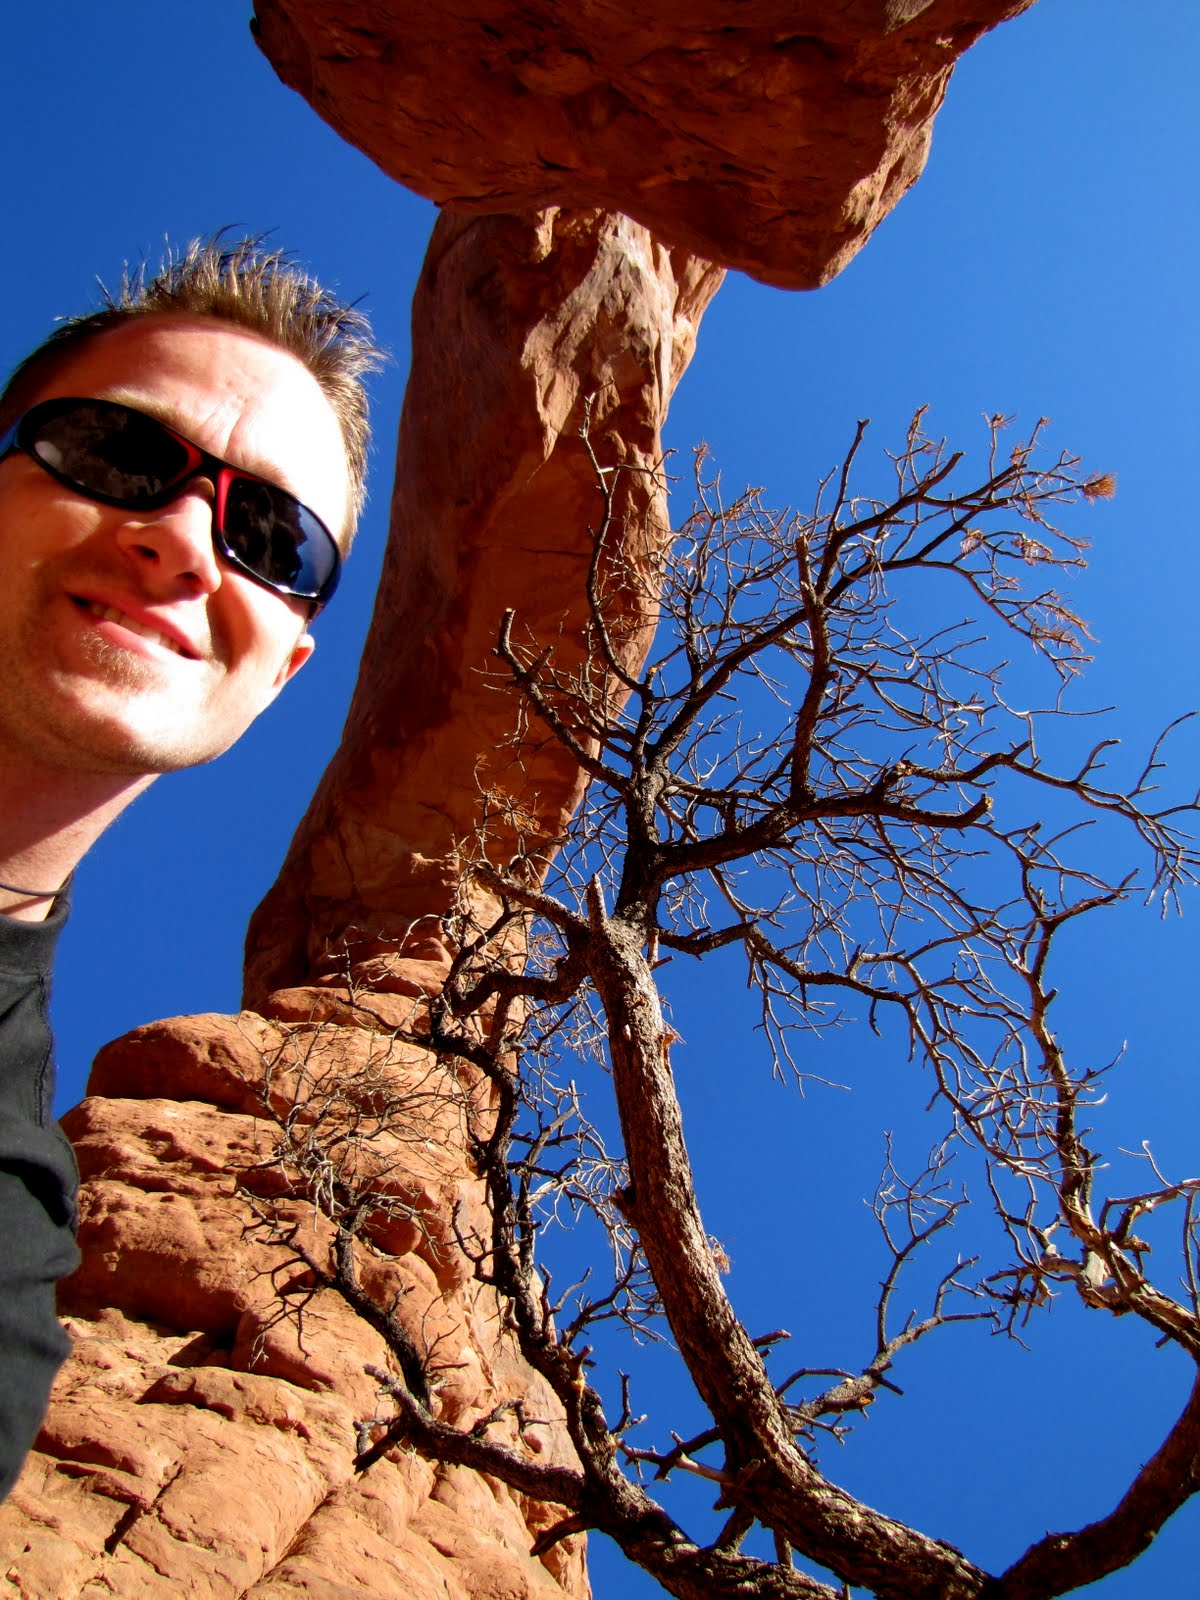 Ati in Arches National Park